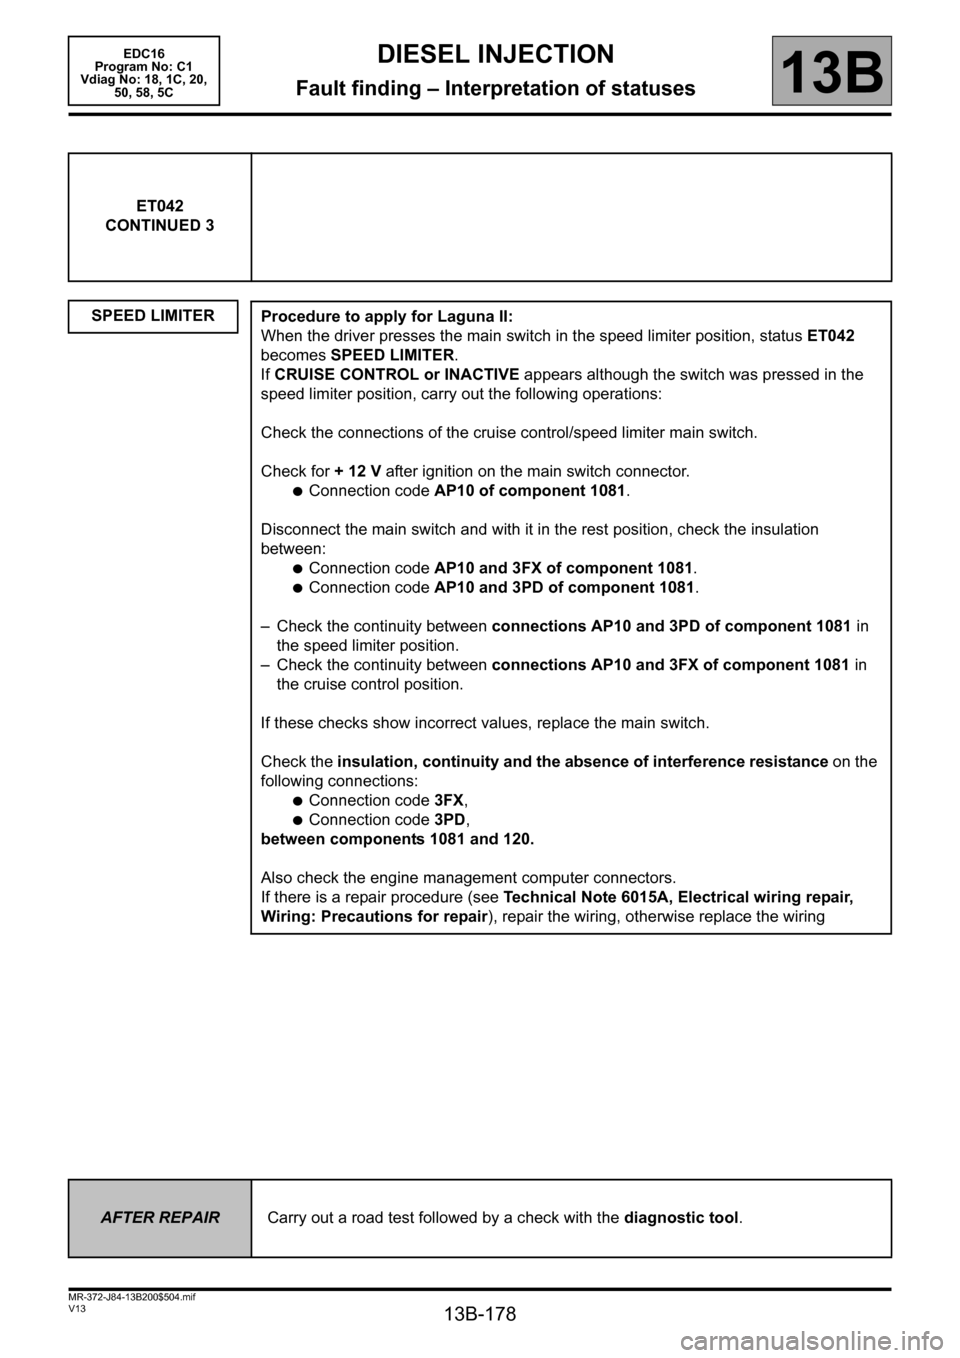 RENAULT SCENIC 2011 J95 / 3.G Engine And Peripherals EDC16 Workshop Manual, Page 178